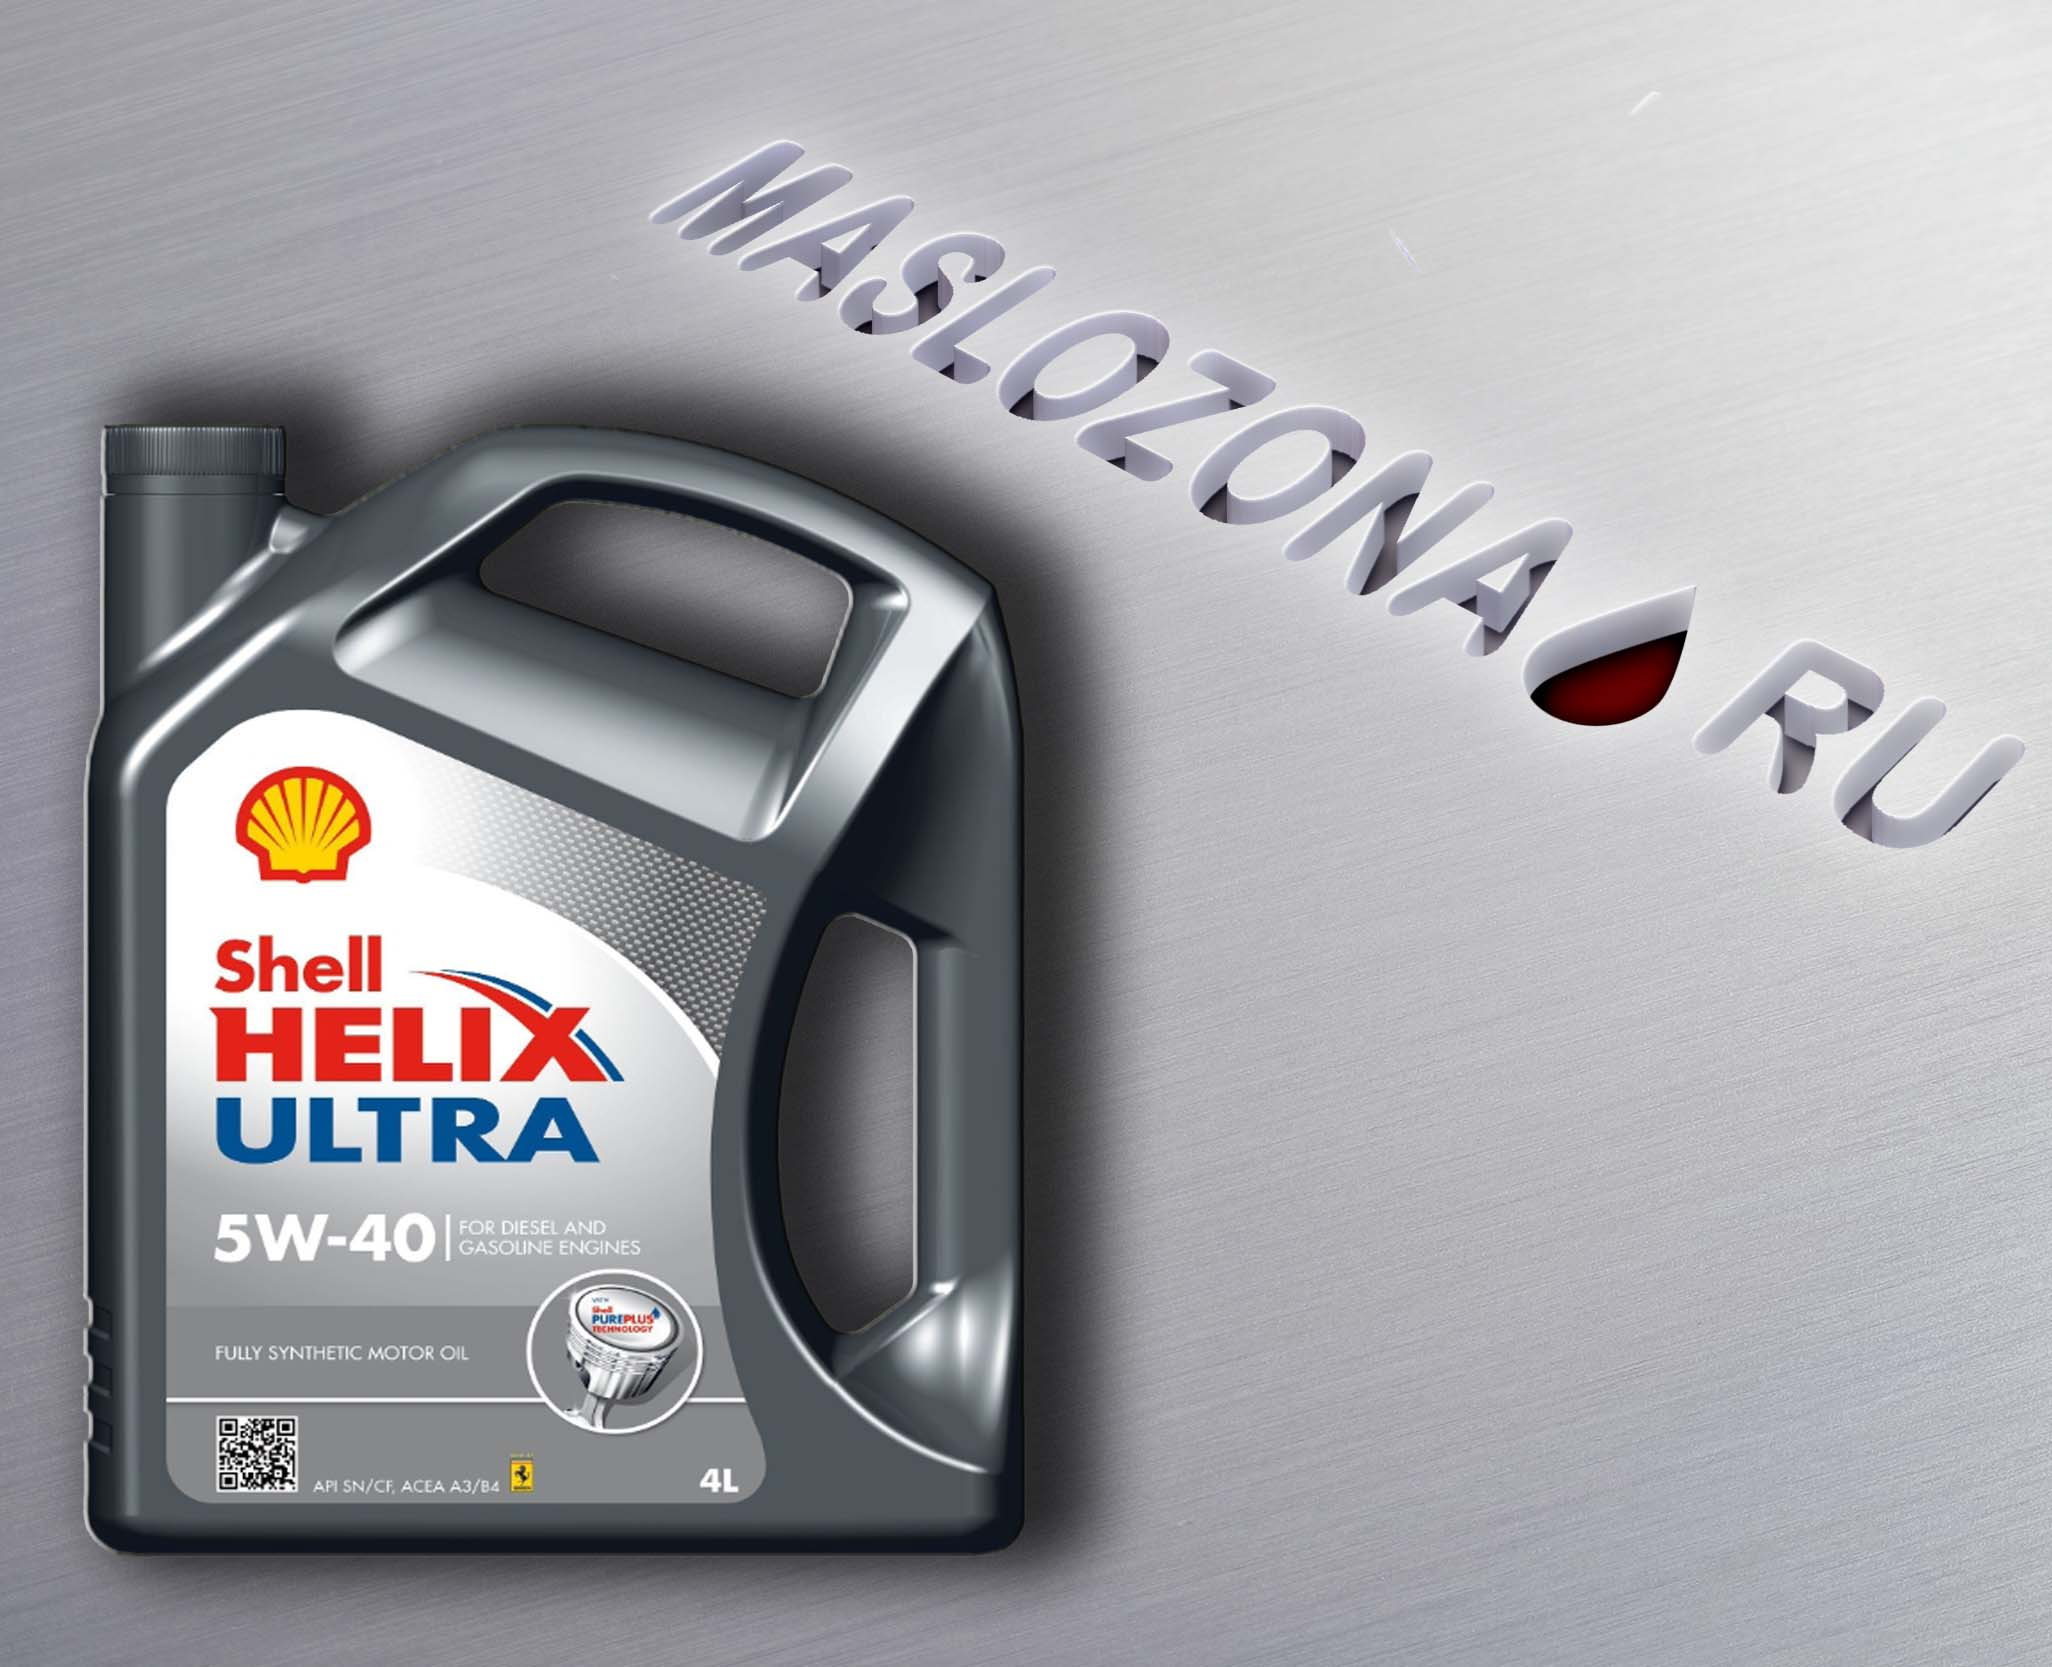 Shell Helix Ultra Vw 502 00